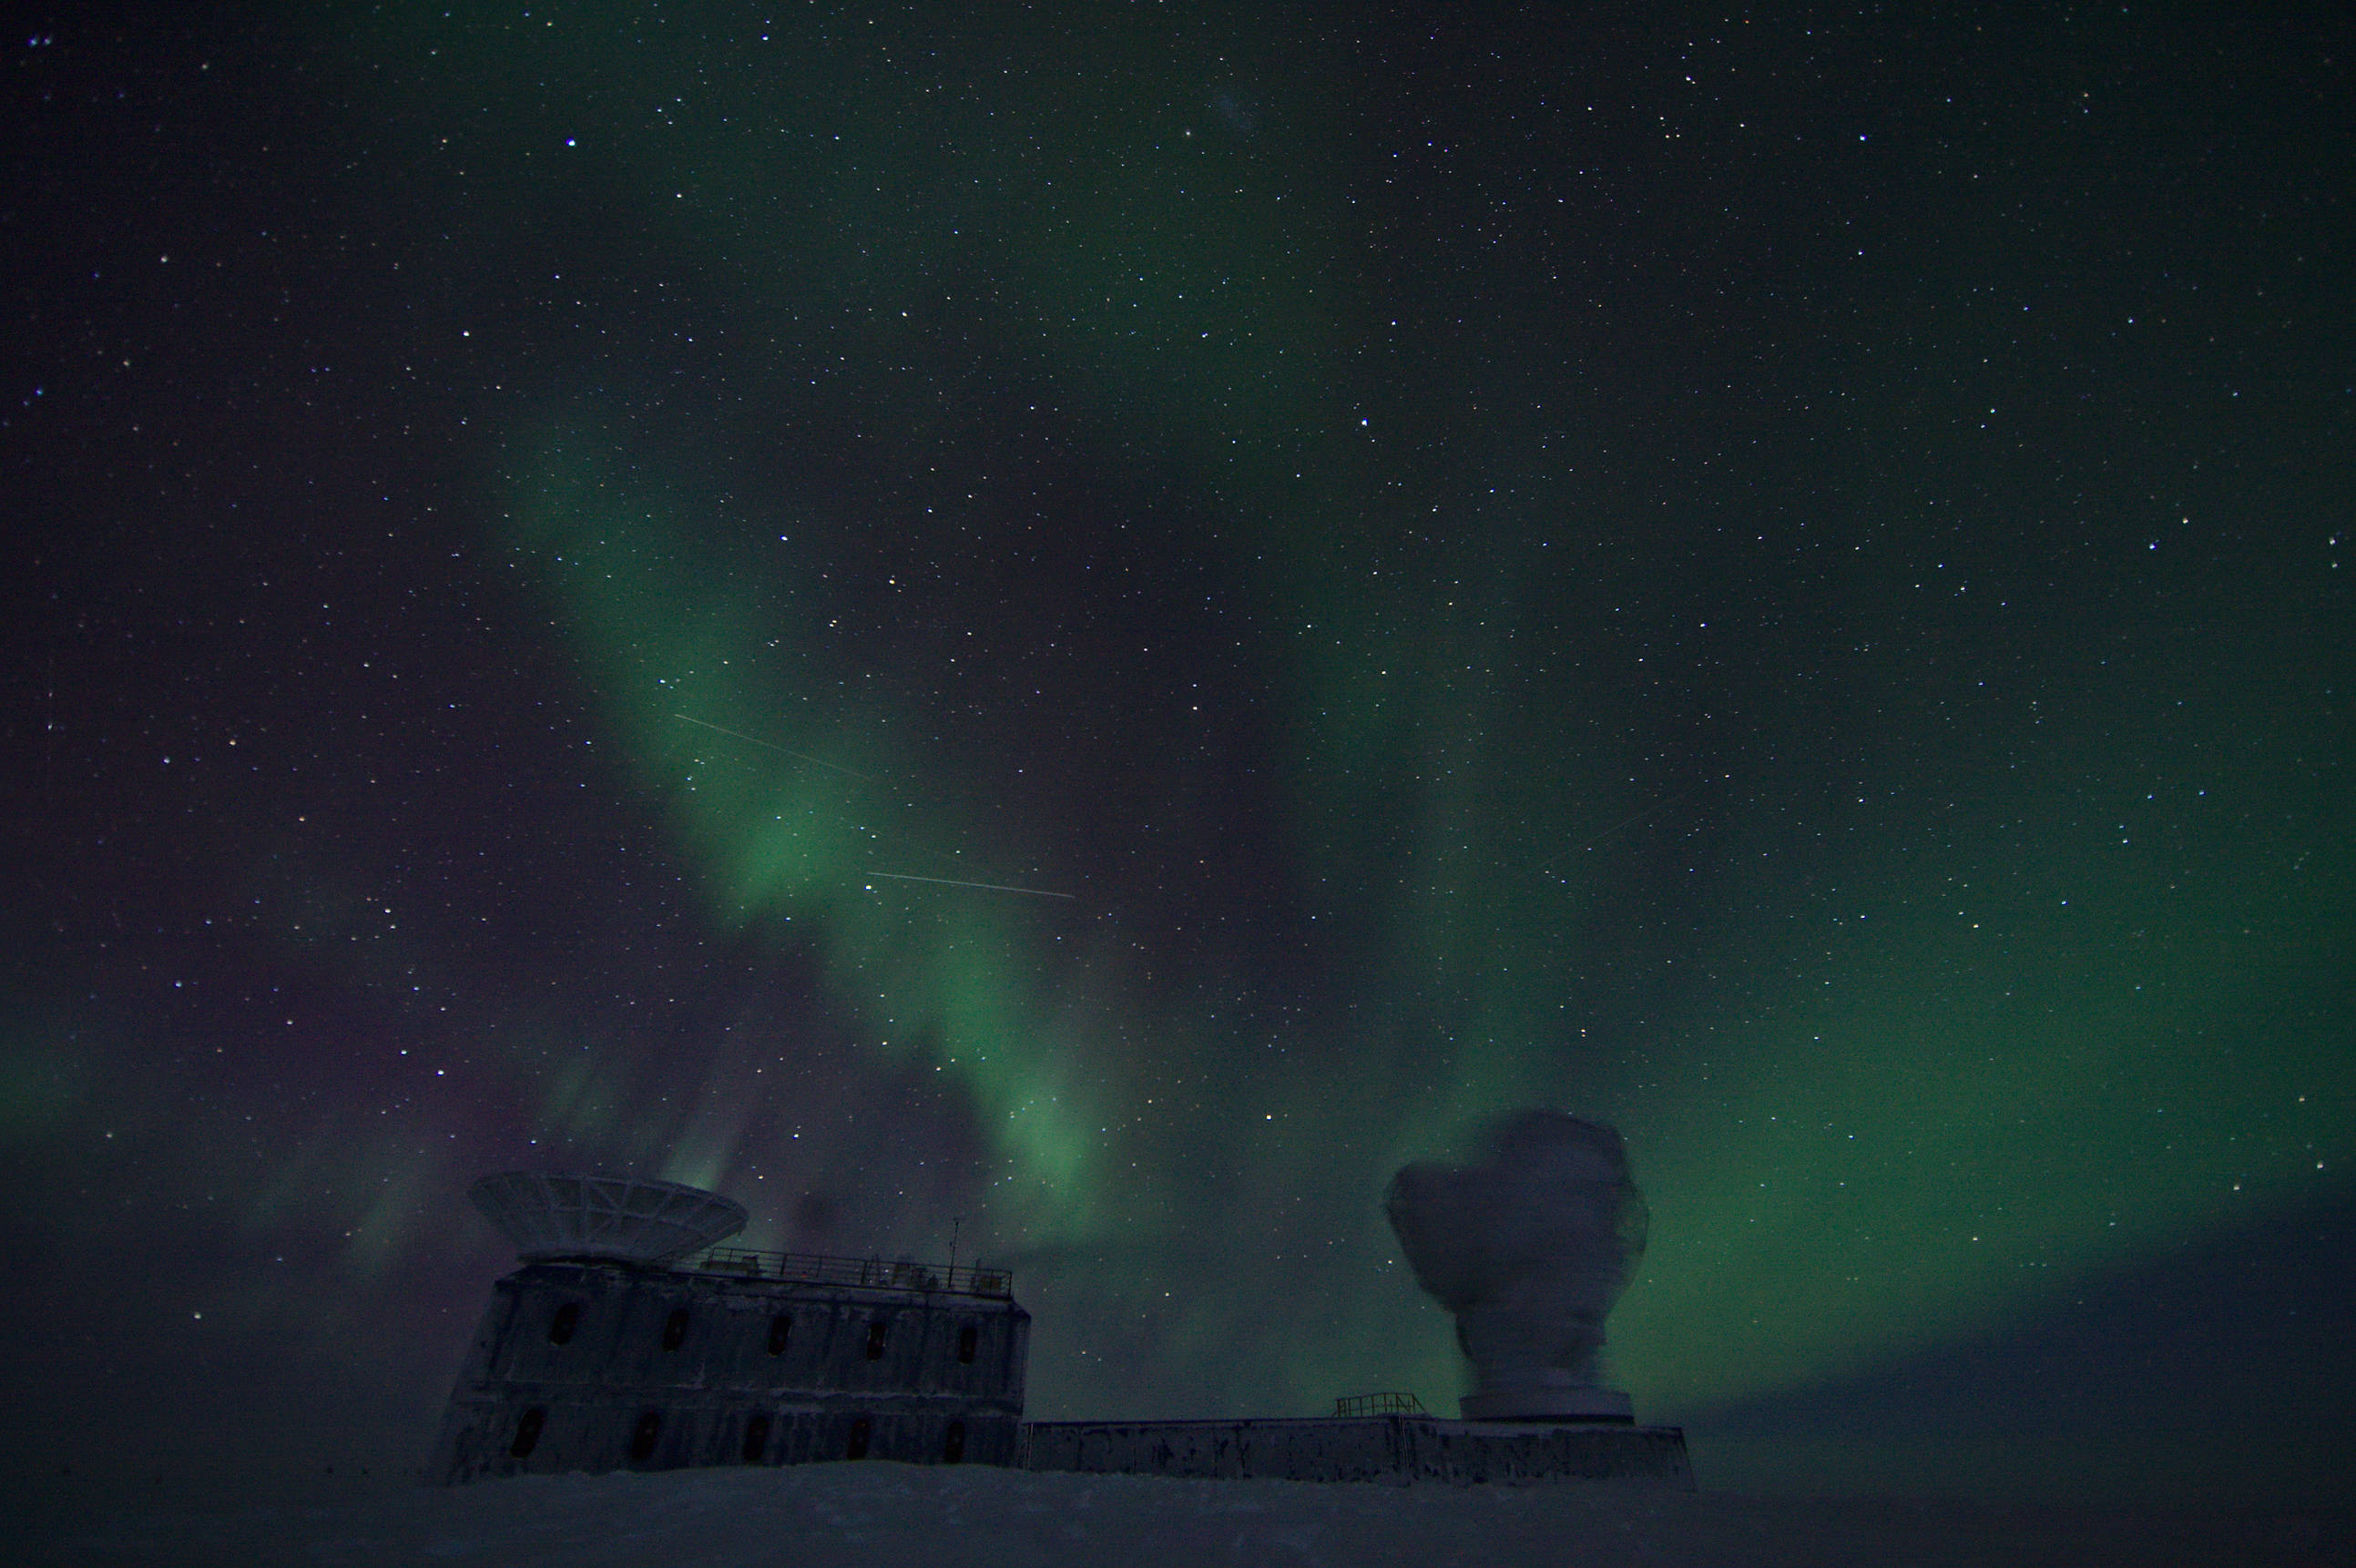 Auroras illuminate the sky while the South Pole Telescope performs CMB field observations. The Small Magellanic Cloud is visible in the very top of the picture.